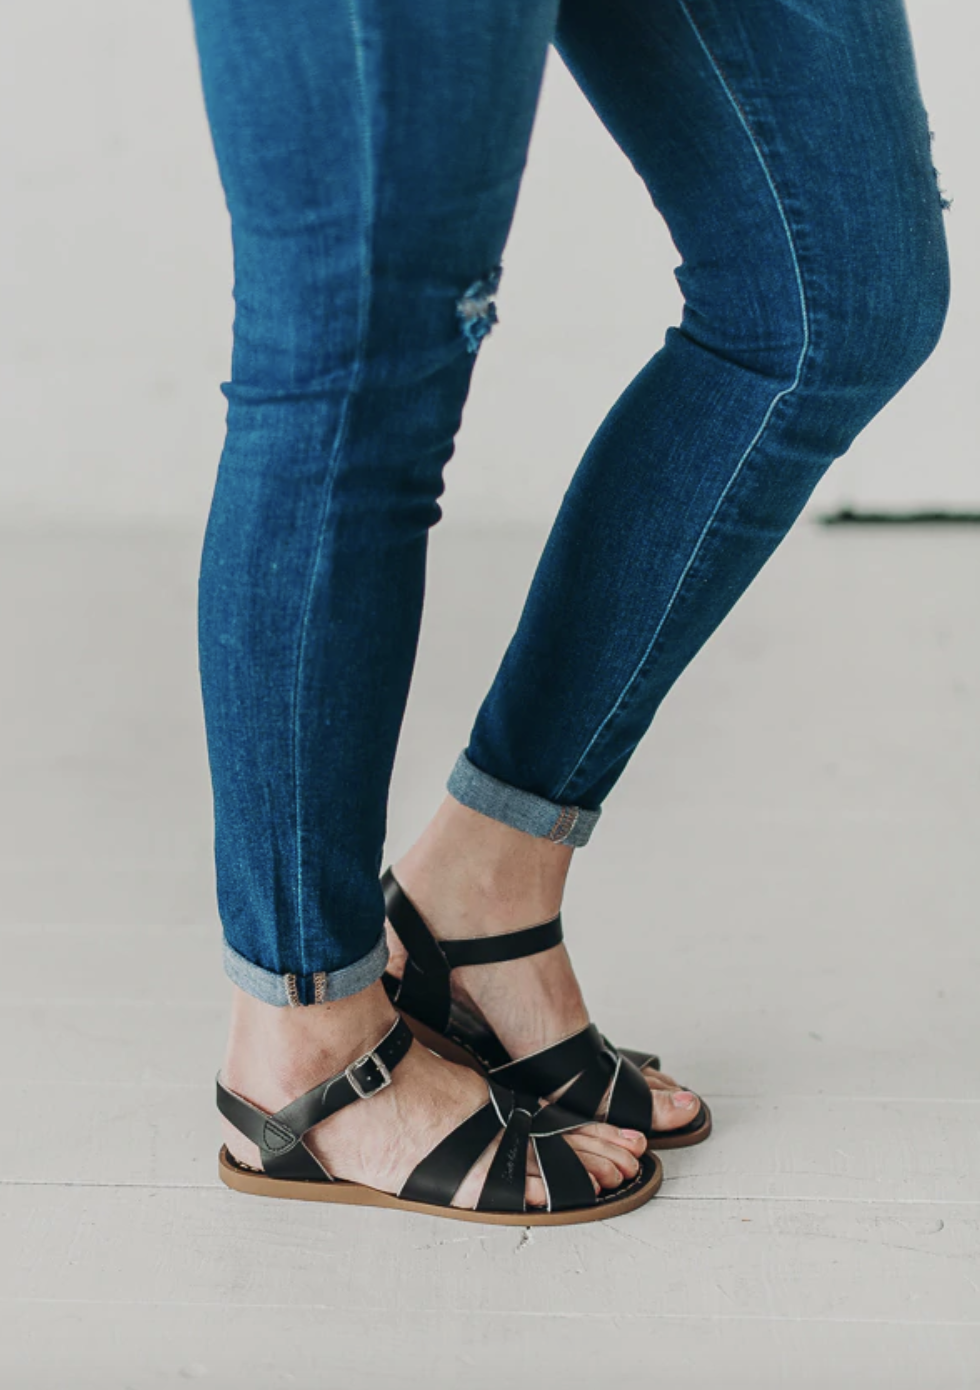 Open toed sandals with rust proof buckles